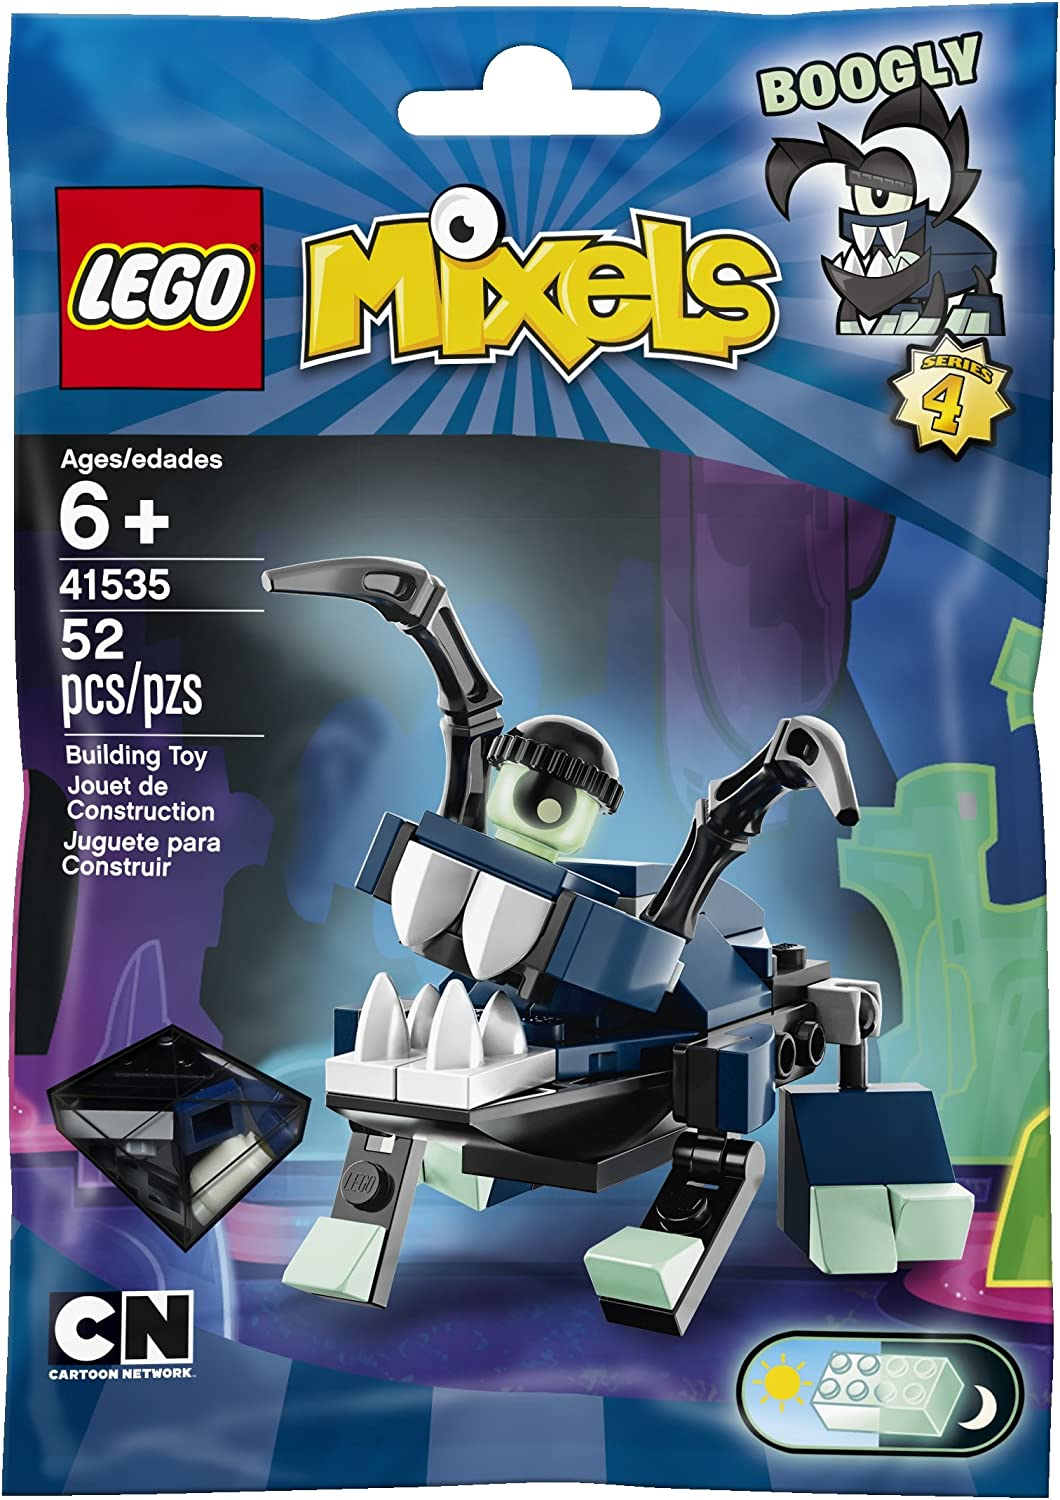 LEGO Mixels 41535 Boogly Building Kit